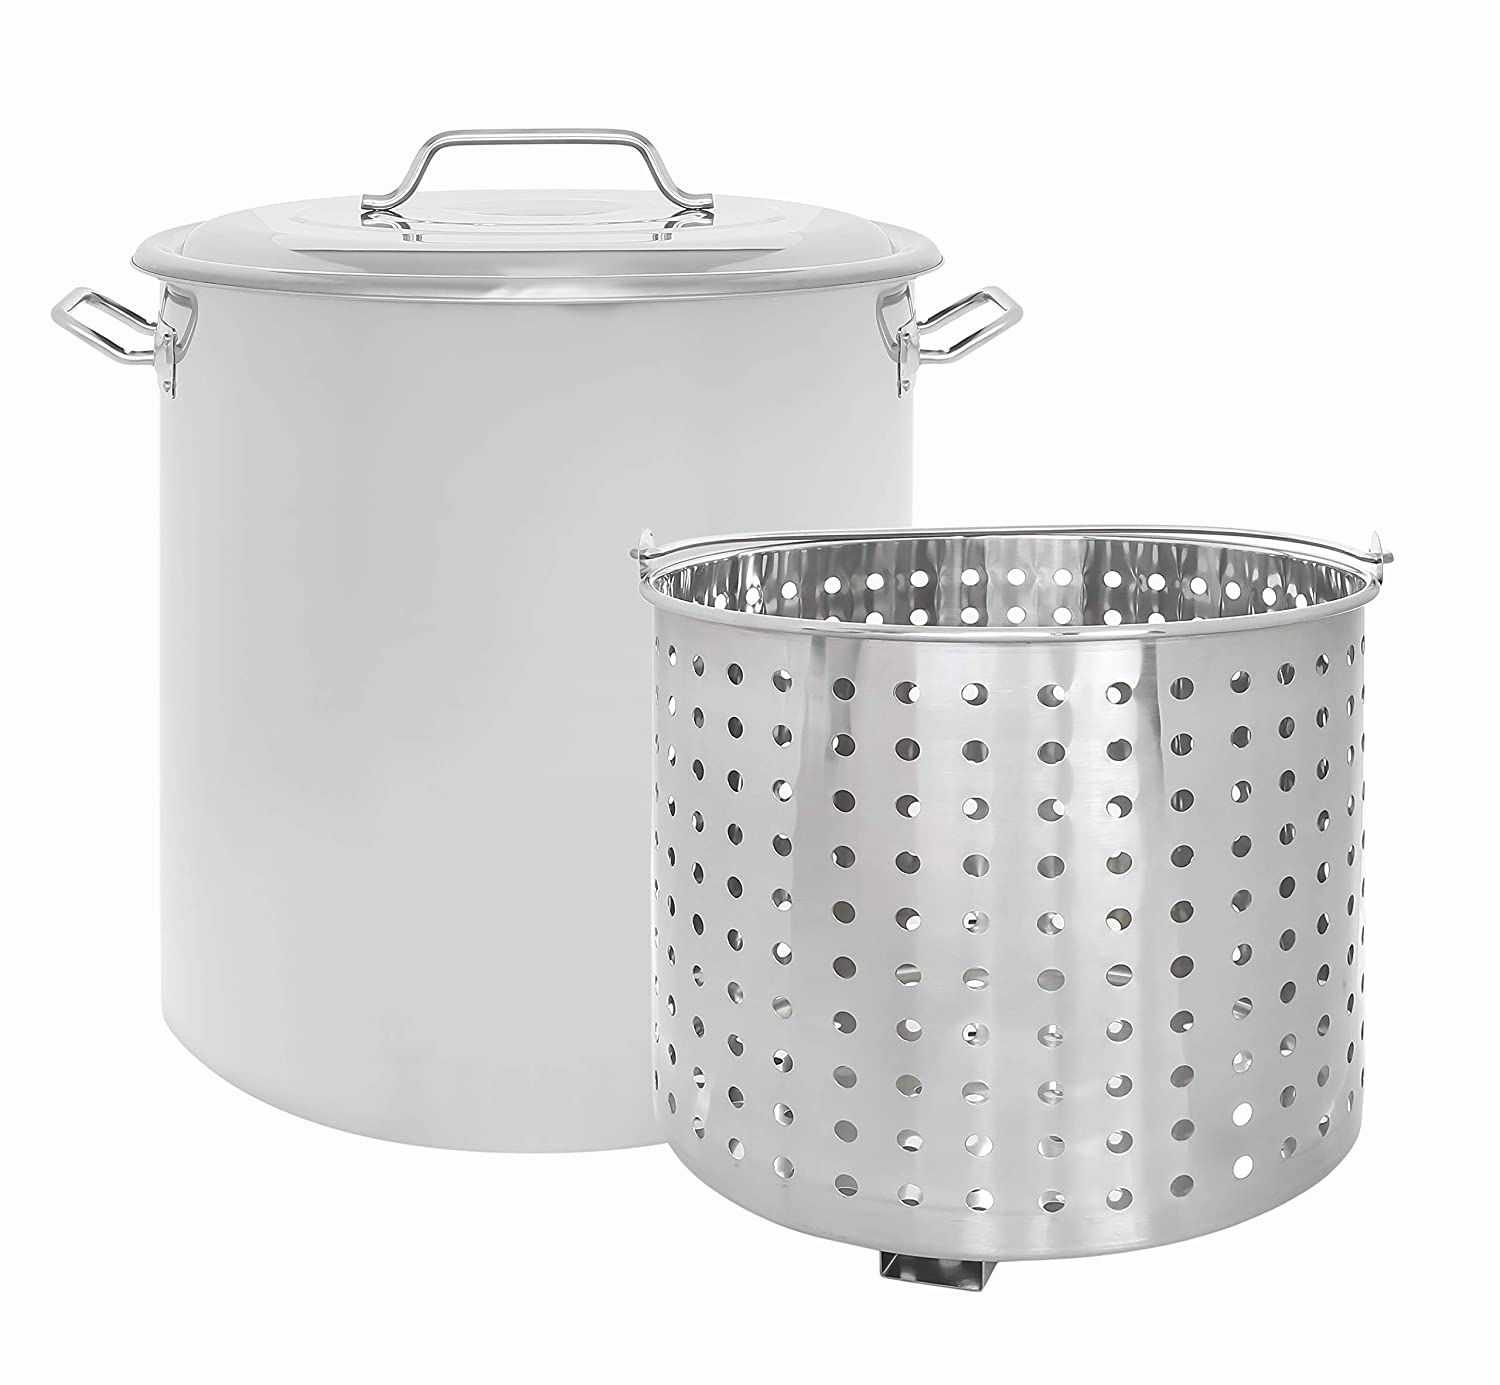 CONCORD Stainless Steel Stock Pot w/Steamer Basket. Cookware great for boiling and steaming (120 Quart)